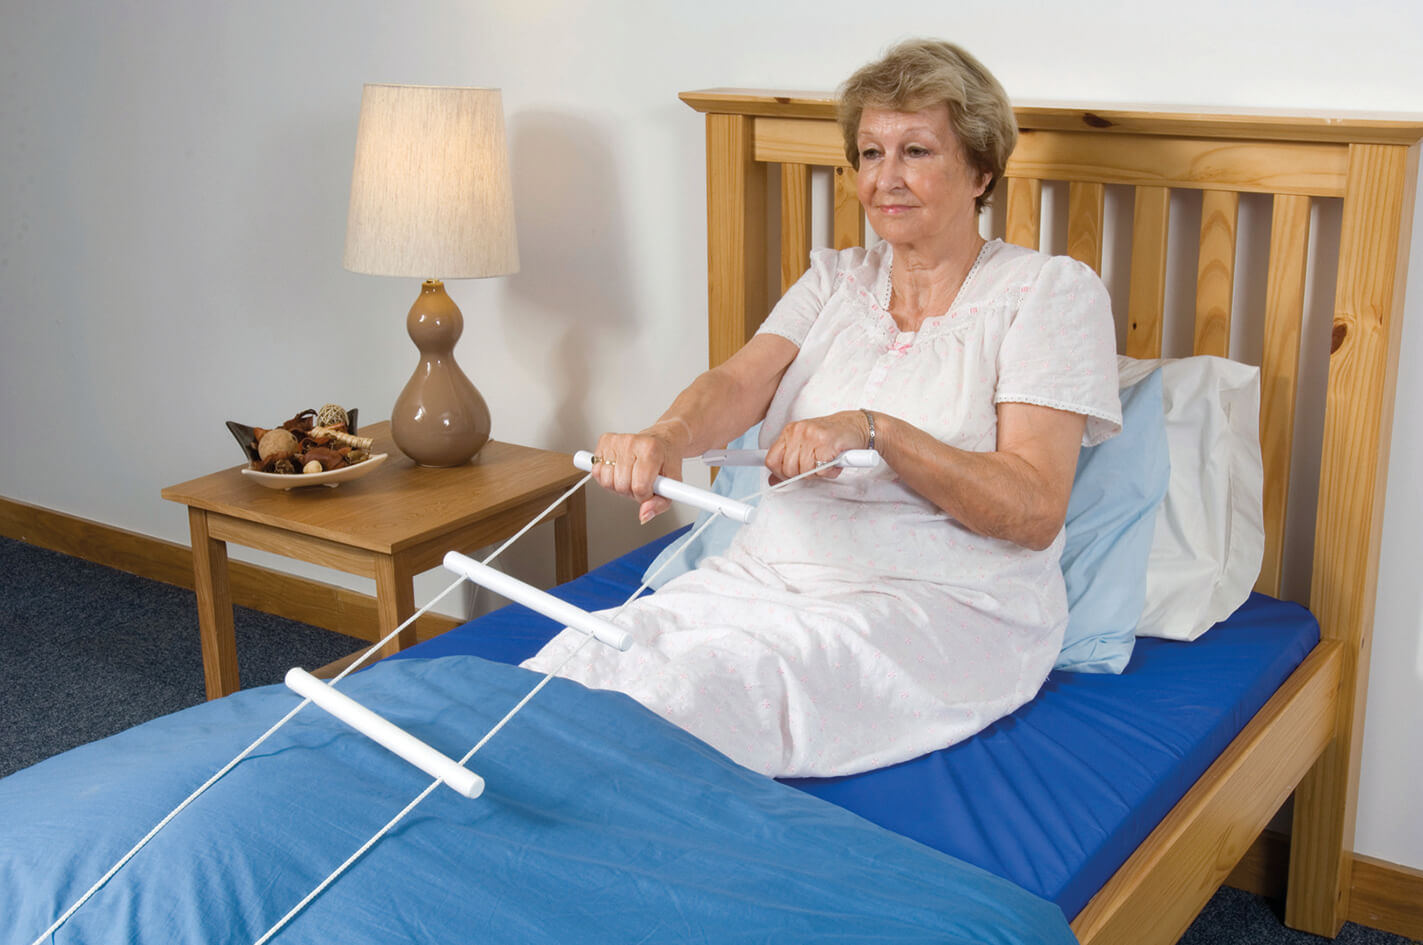 Lady using Bed Rope Ladder